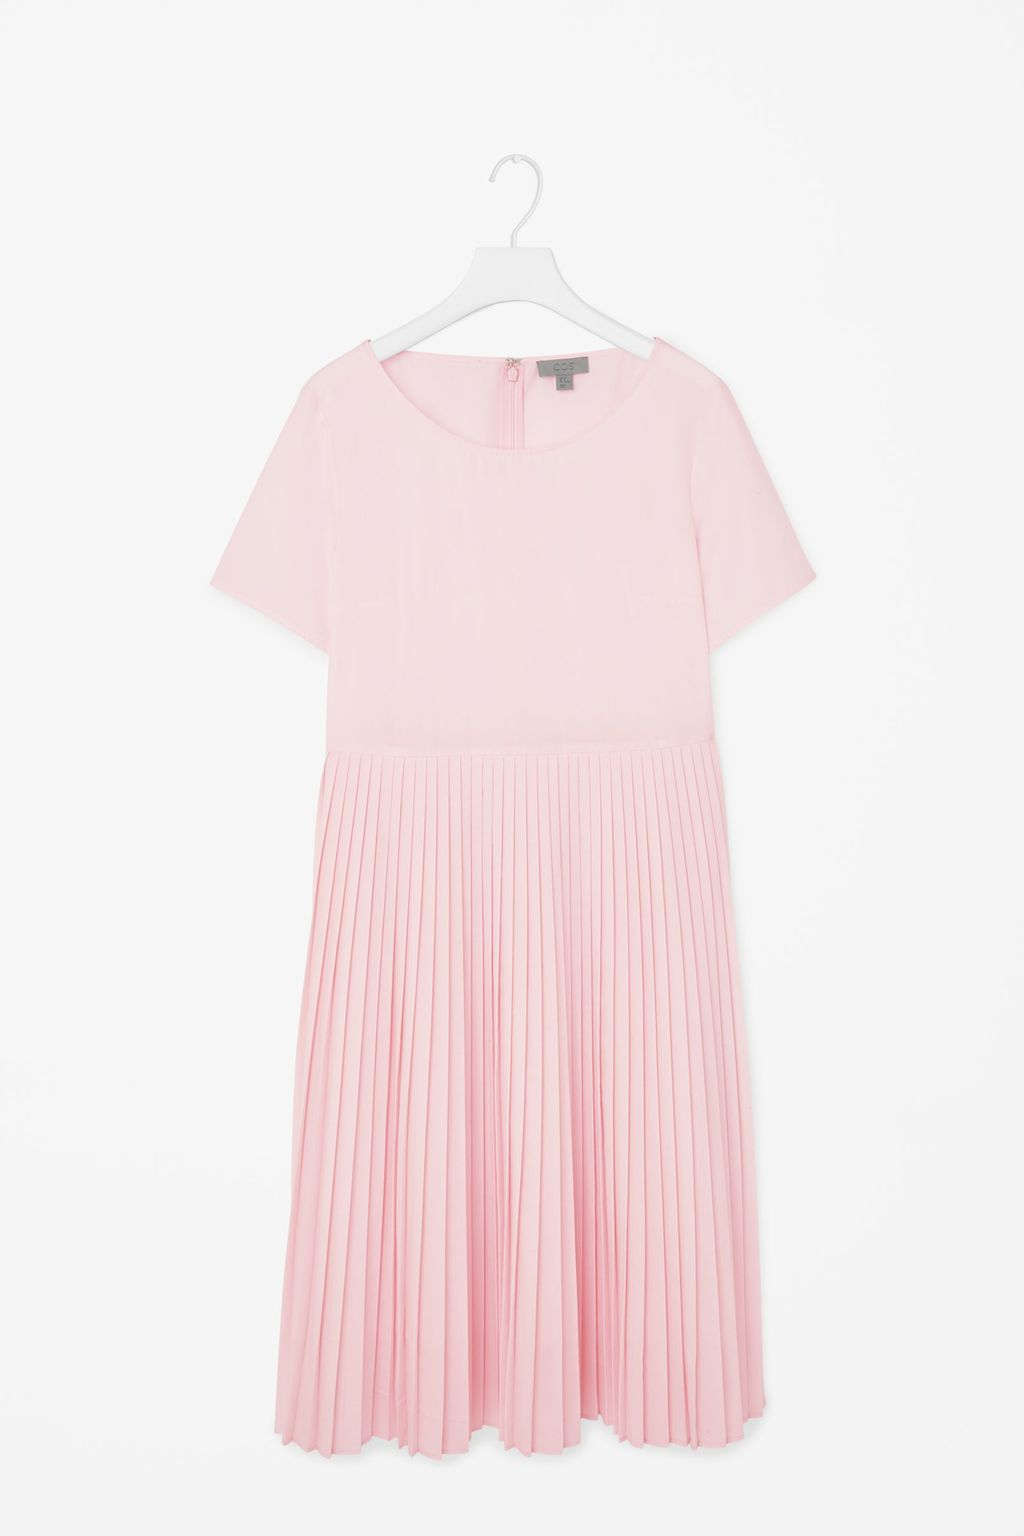 Pleated Poplin Dress - length: mid thigh; neckline: round neck; pattern: plain; predominant colour: blush; occasions: evening, occasion, creative work; fit: fitted at waist & bust; style: fit & flare; fibres: polyester/polyamide - 100%; hip detail: adds bulk at the hips; sleeve length: short sleeve; sleeve style: standard; pattern type: fabric; texture group: other - light to midweight; season: s/s 2015; wardrobe: investment